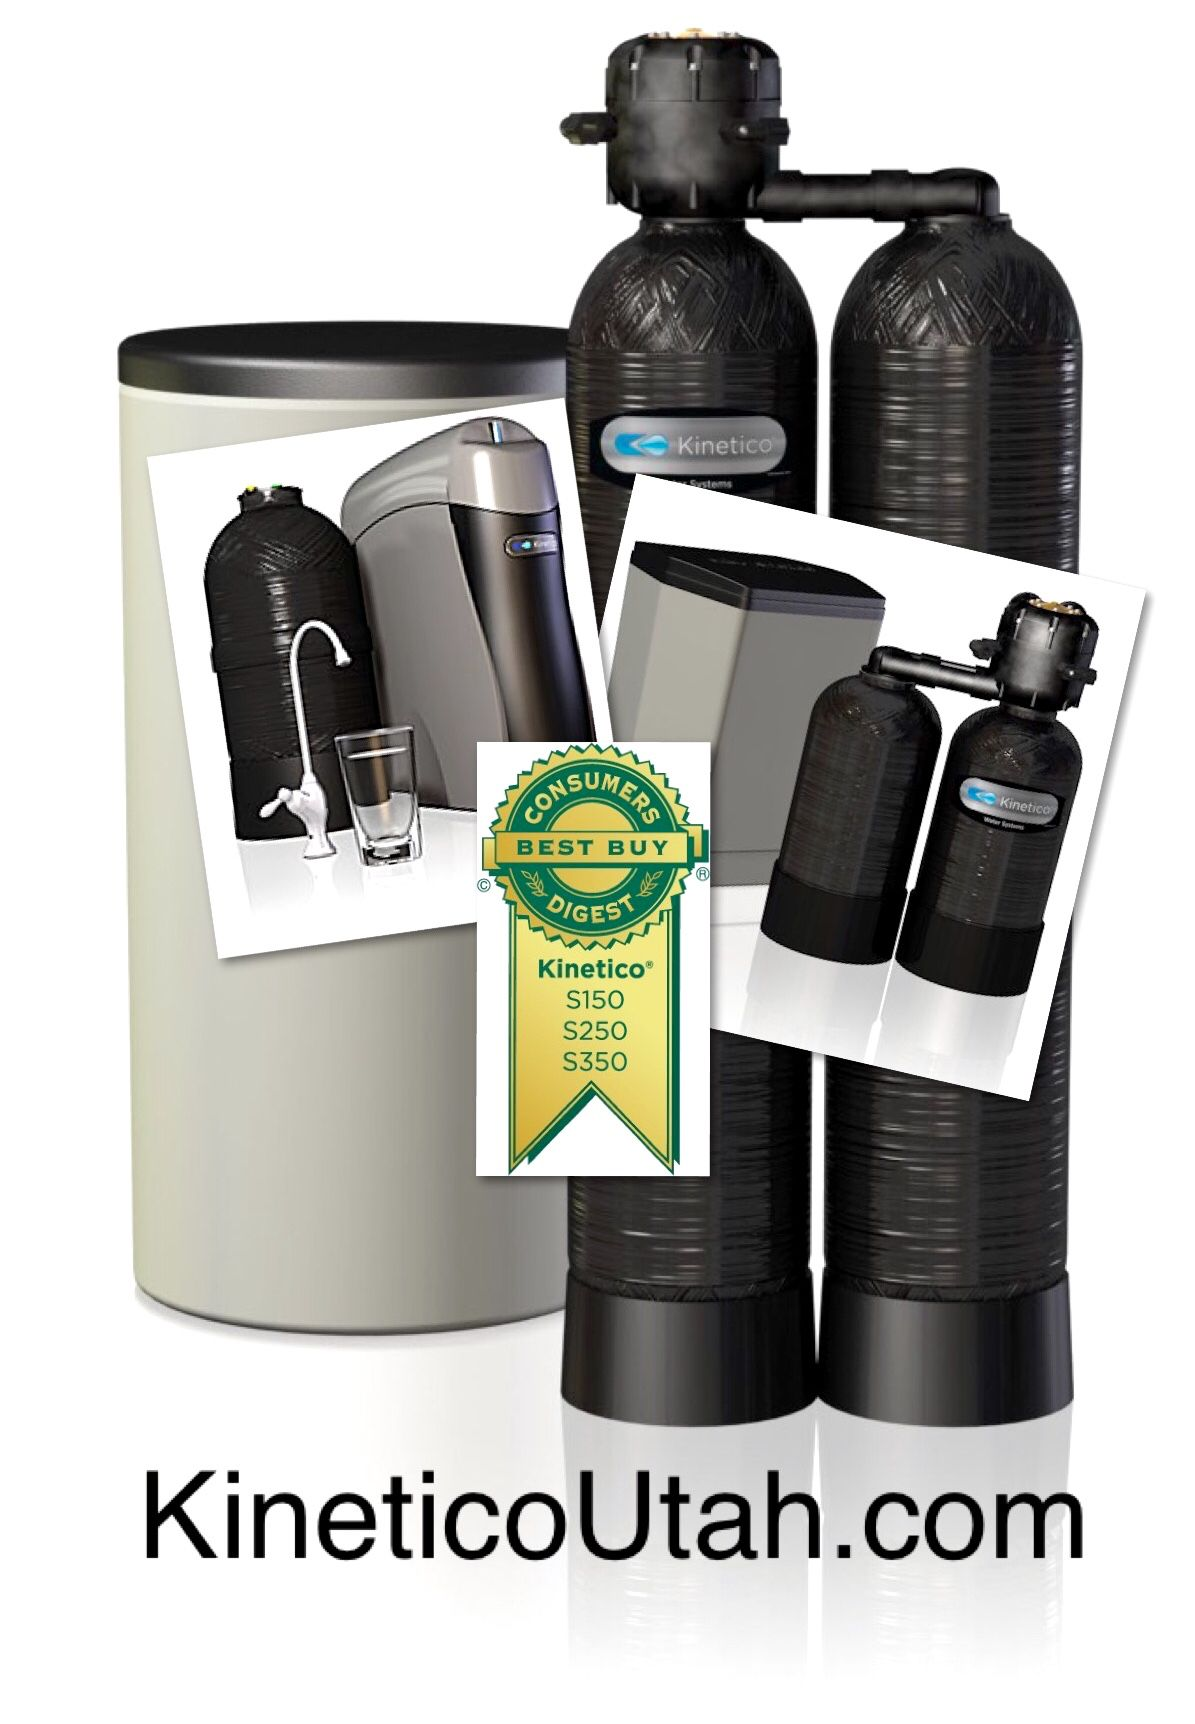 Learn More About Why Kinetico Water Softeners And Reverse Osmosis